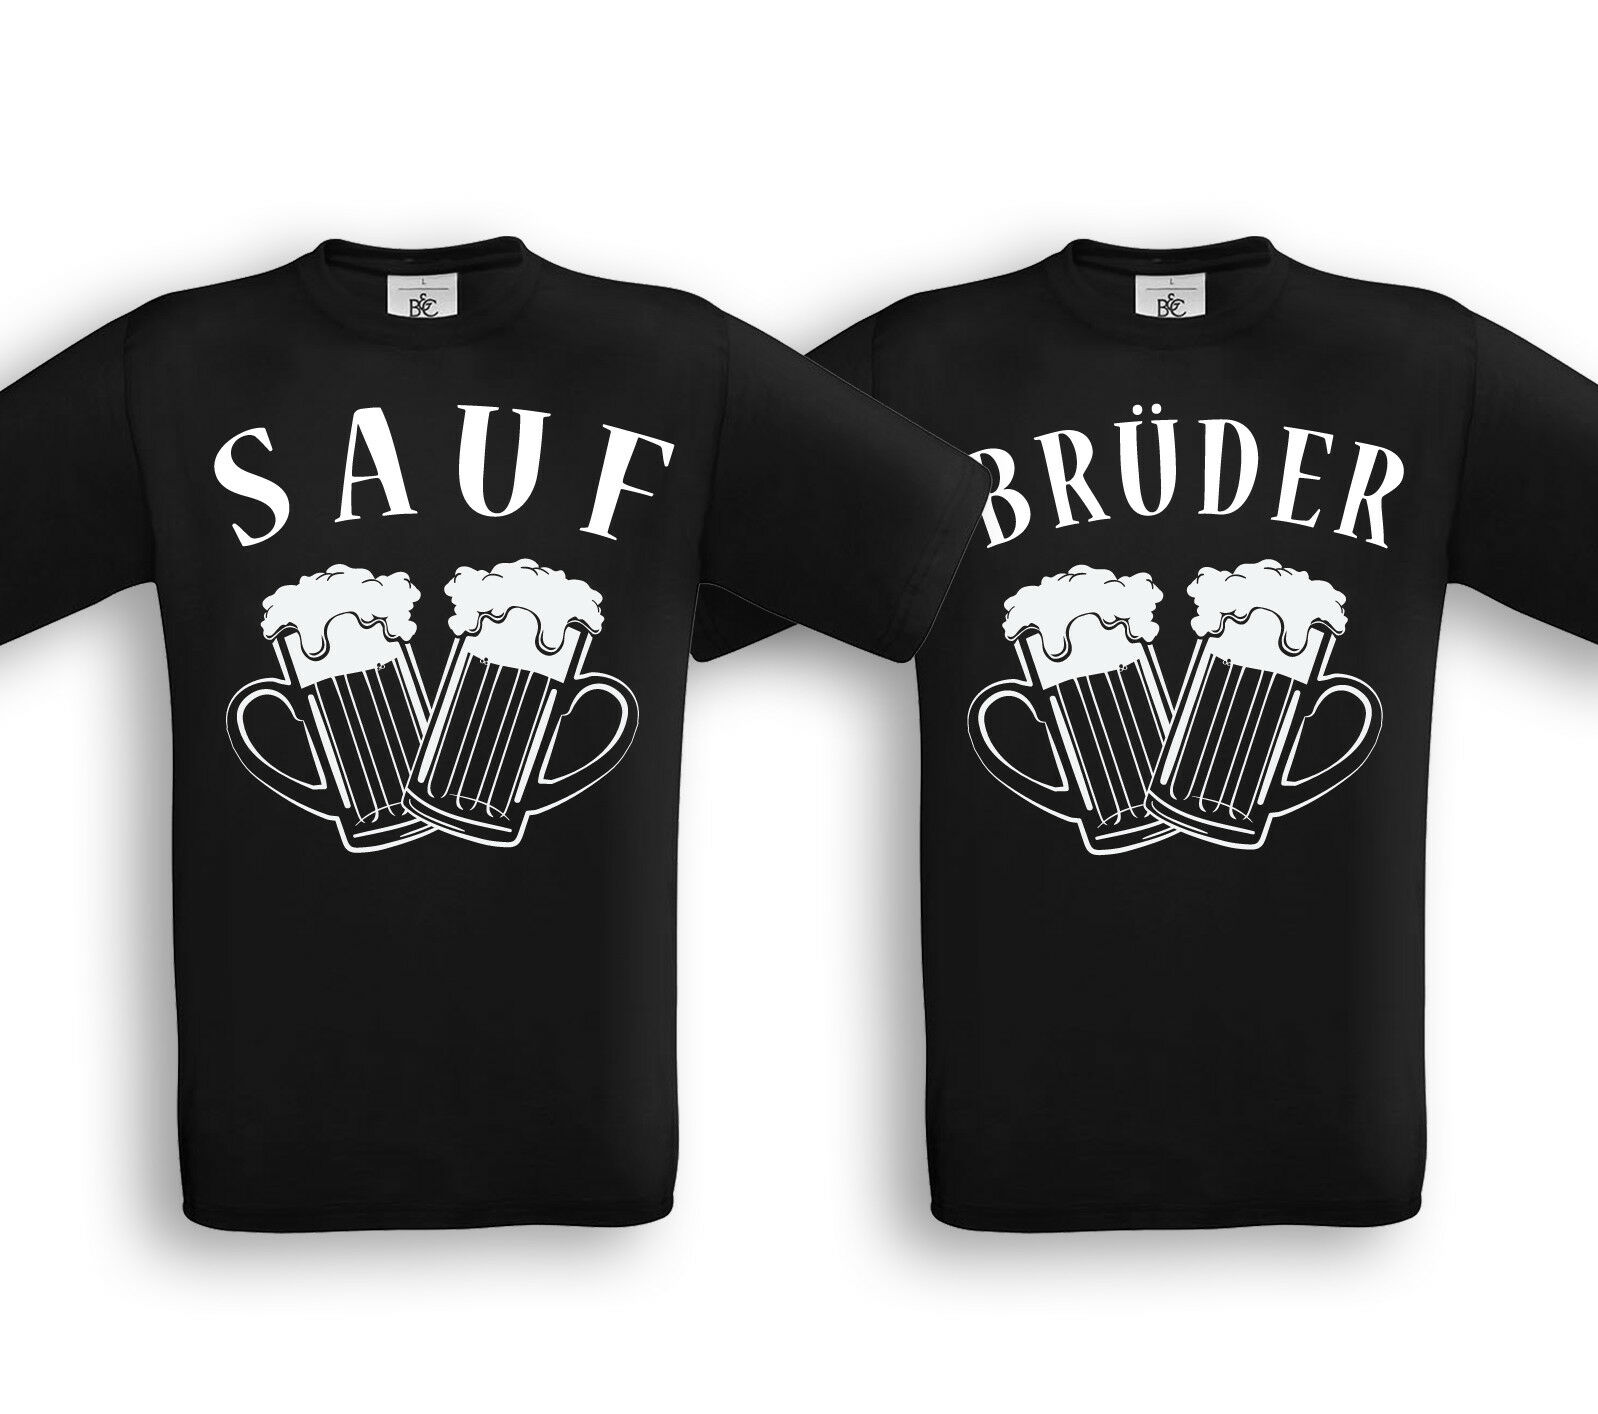 SAUFBRÜDER - Partner Shirts - Friends Freunde Brüder Bier Alkohol Saufen Party